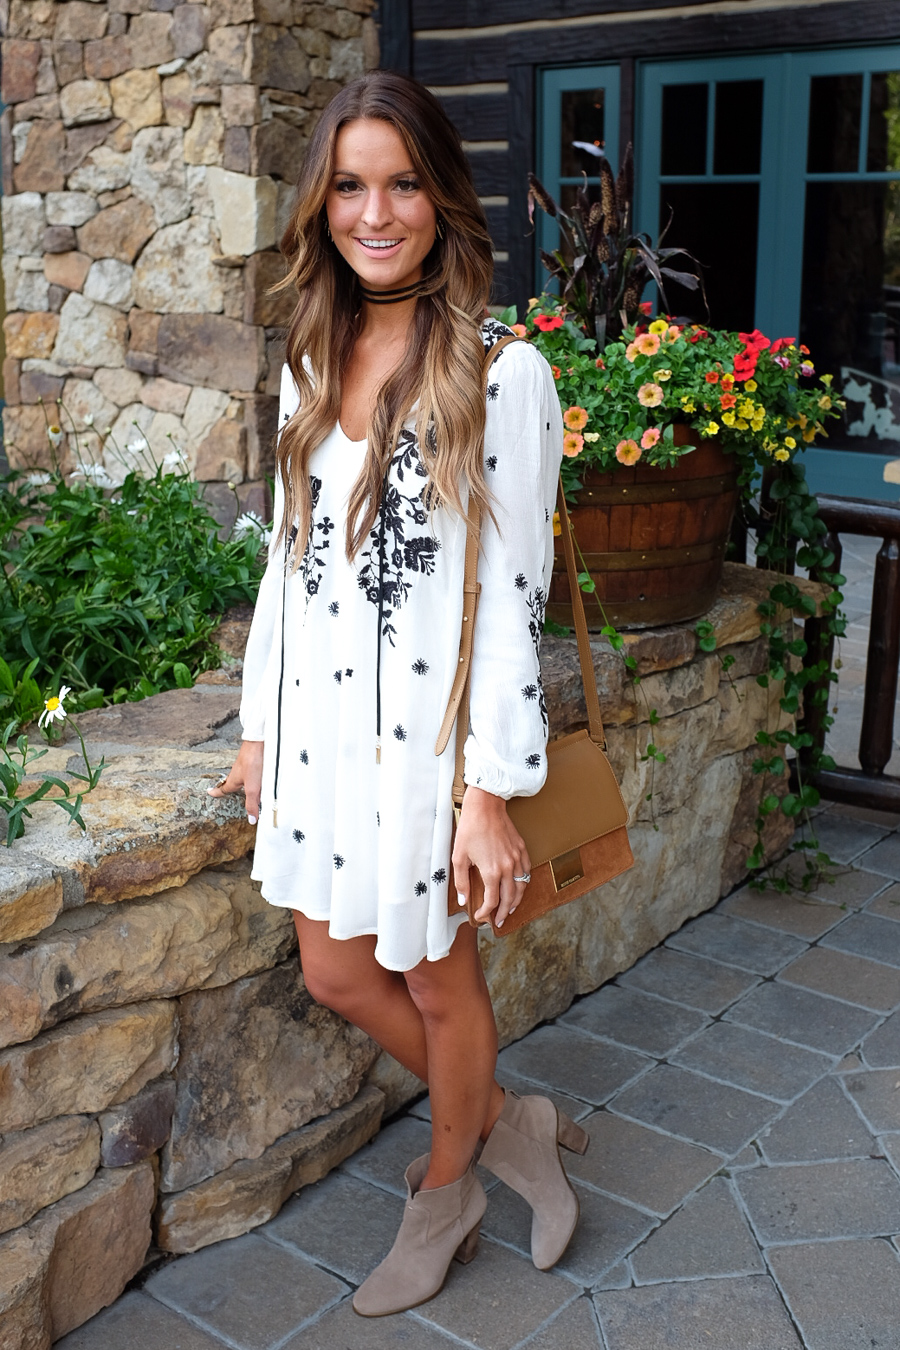 boho dress and booties